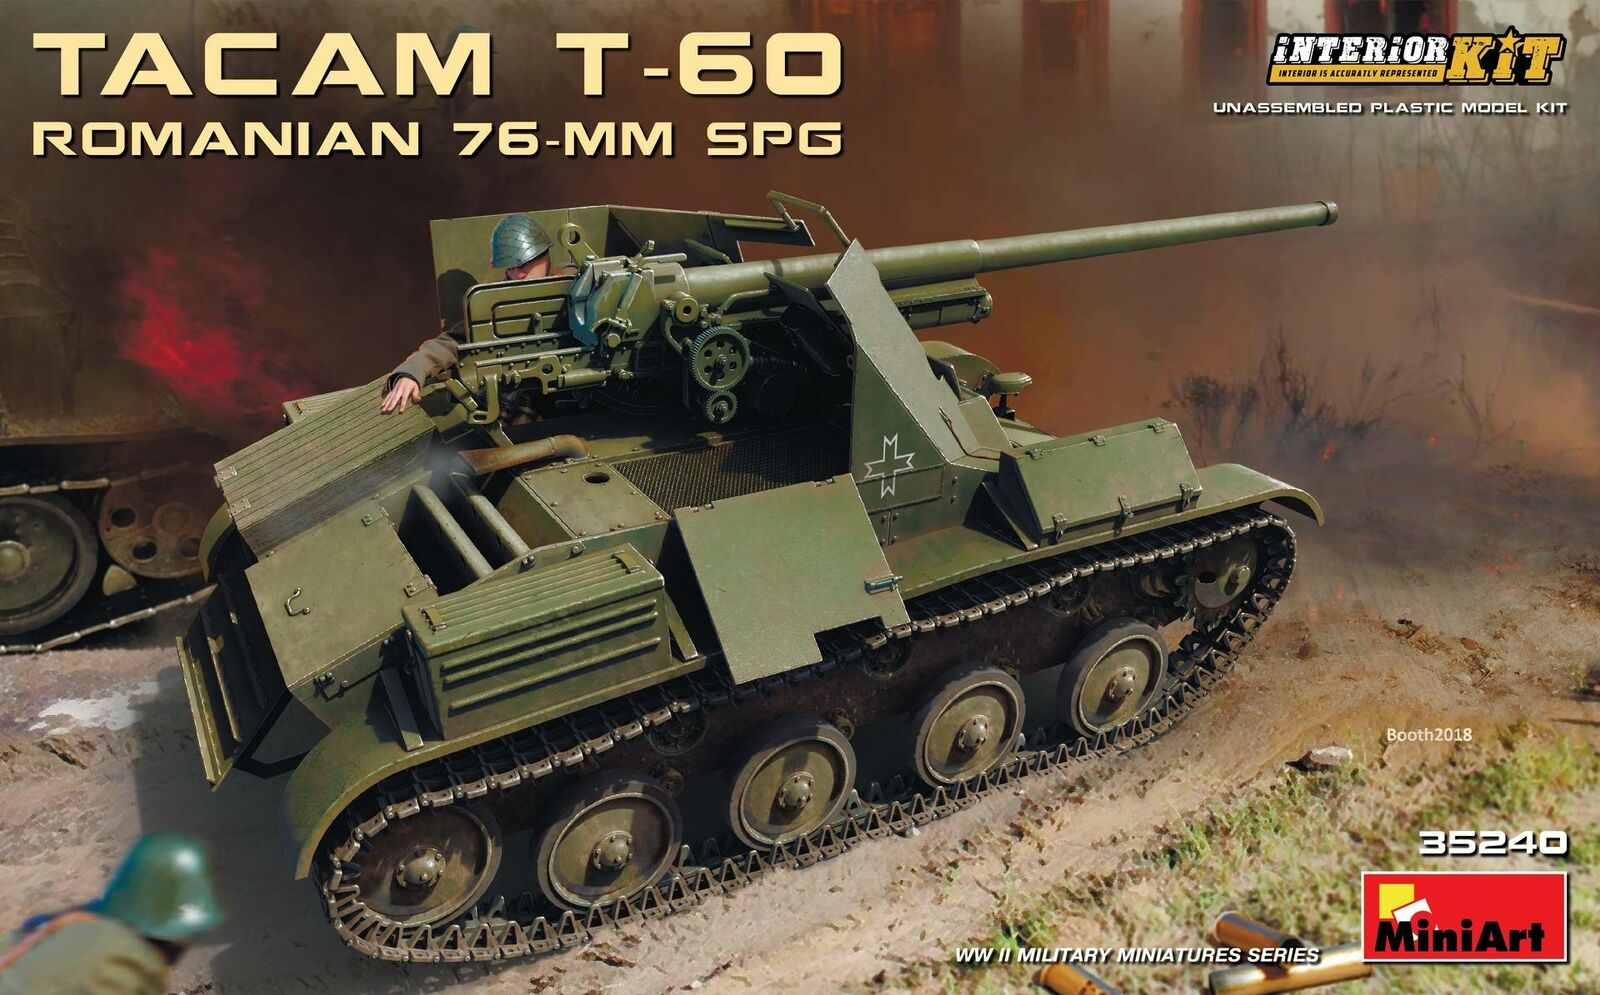 Miniart 1 35 Romanian 76mm SPG Tacam T-60 Interior Kit